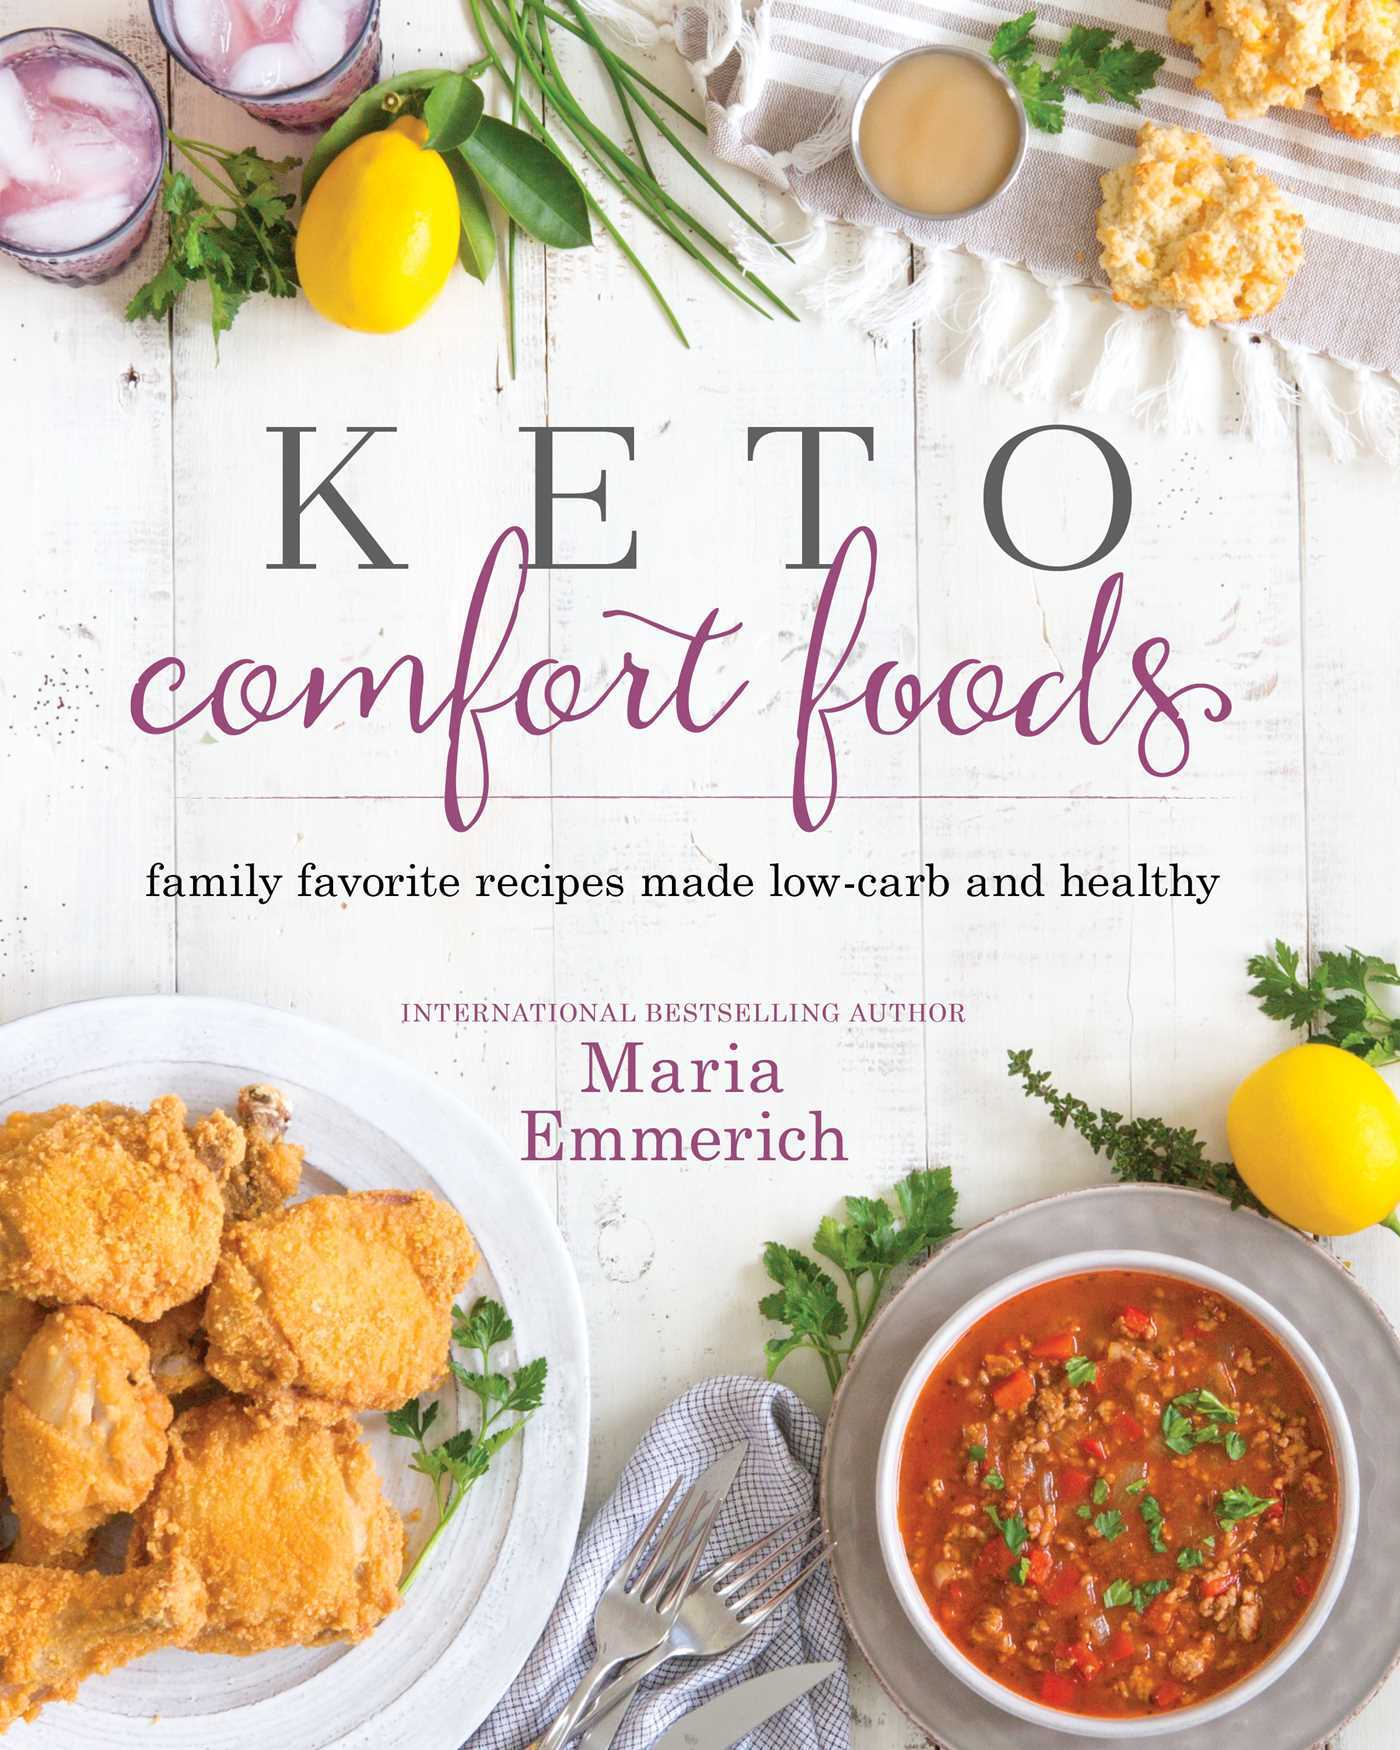 Keto Comfort Foods  Family Favorite Recipes Made Low-Carb and Healthy ( PDFDrive